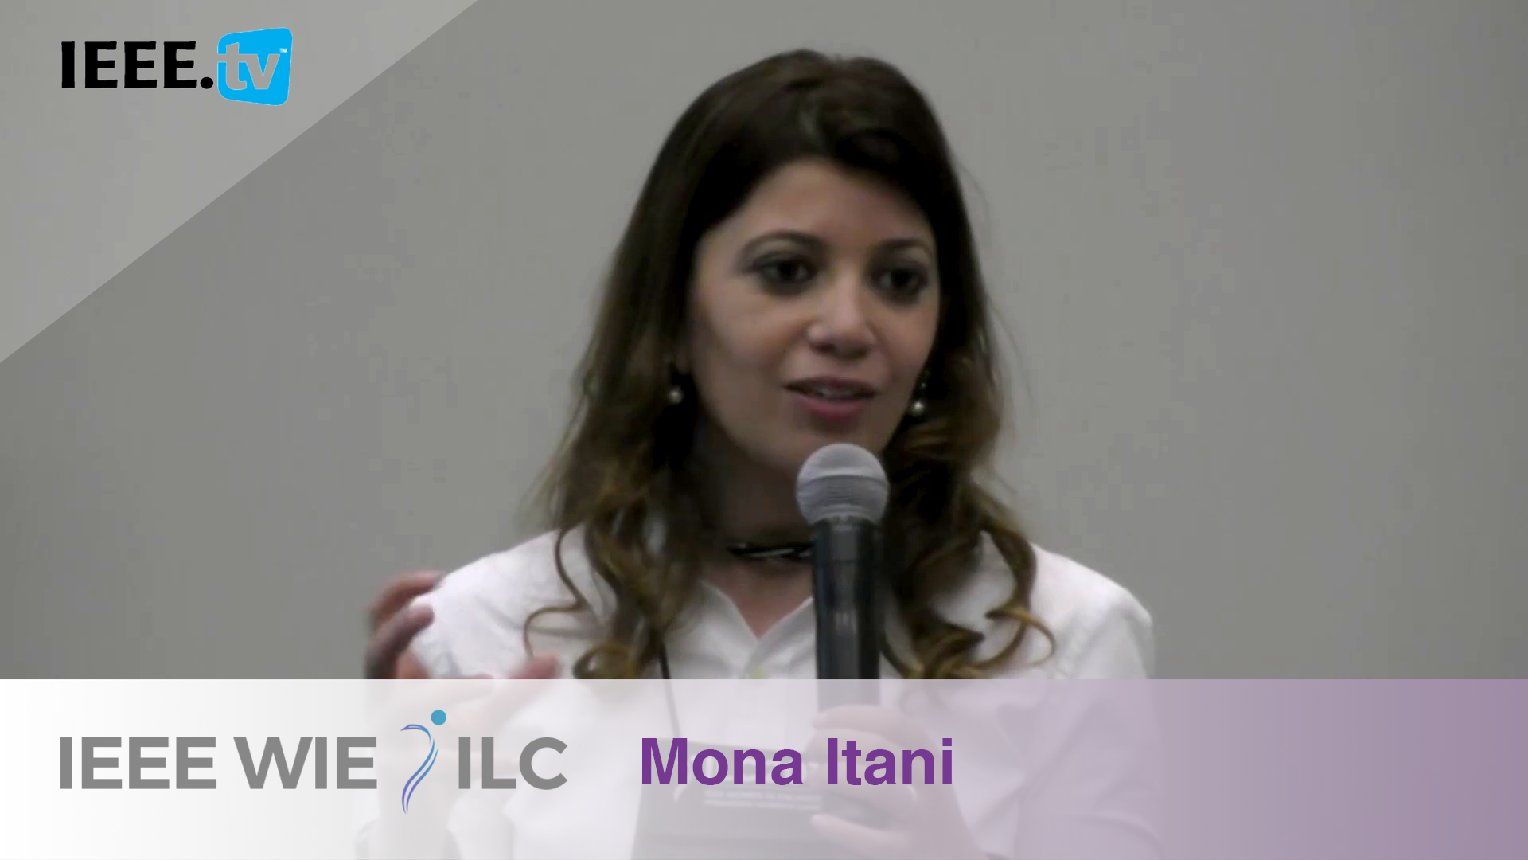 Mona Itani: Inspiring WIE Member of the Year Honorable Mention - IEEE WIE ILC Awards 2017